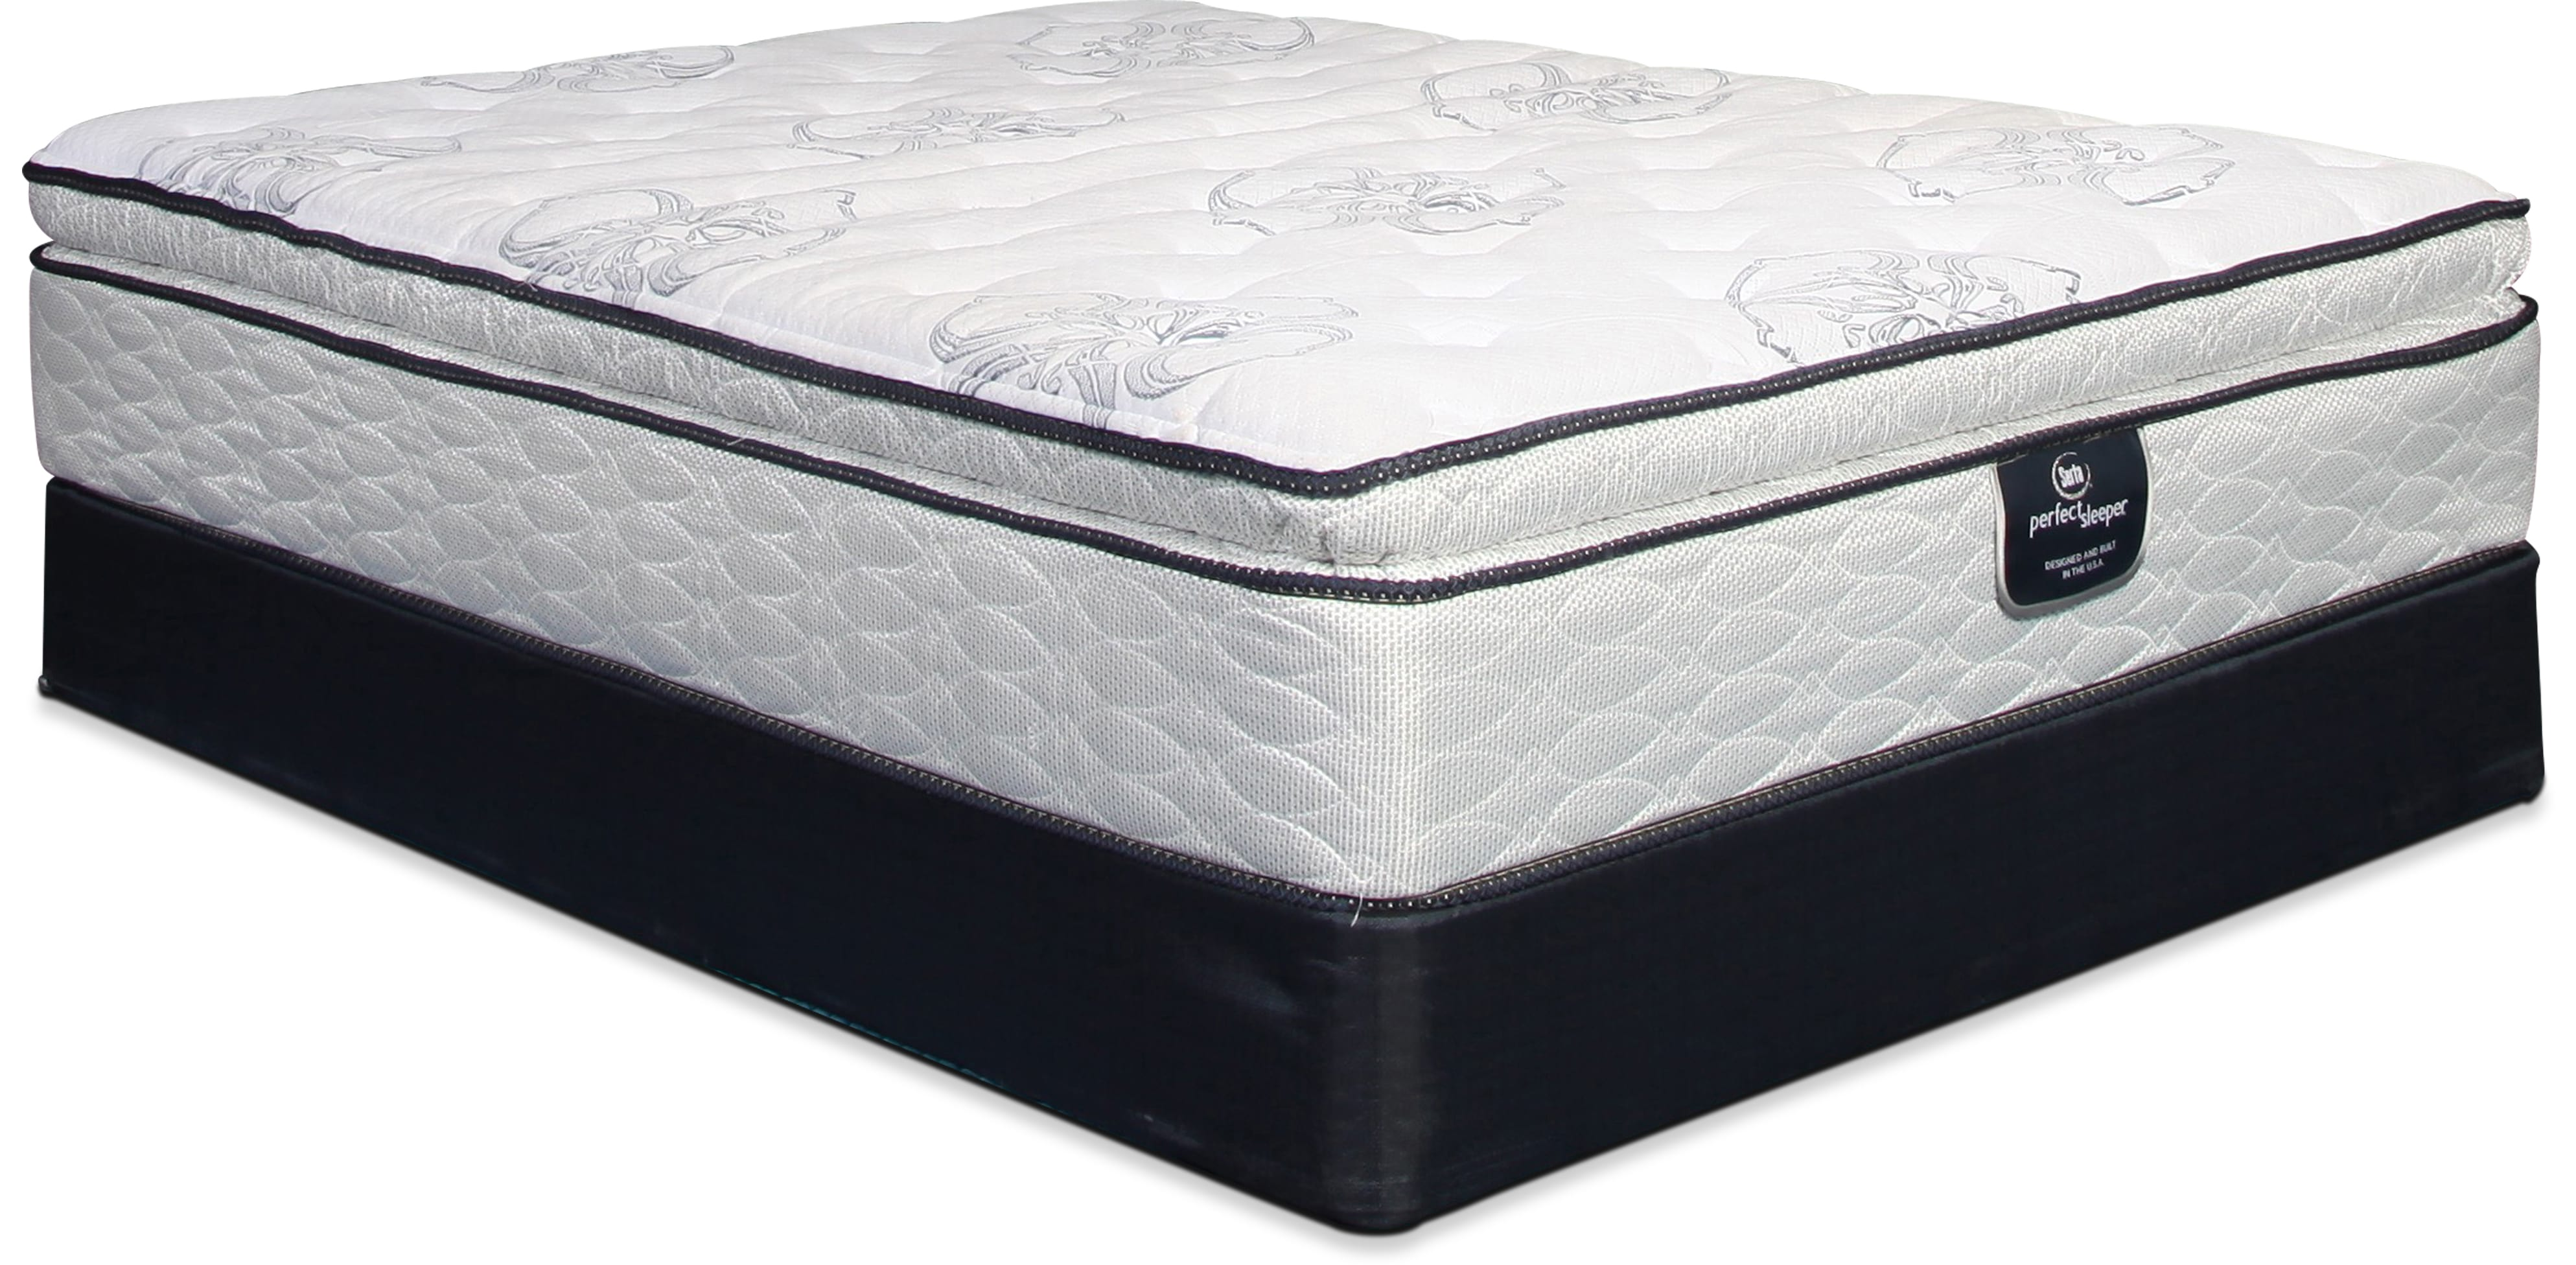 Serta Perfect Sleeper Super Pillowtop Queen Mattress and Split Boxsprings